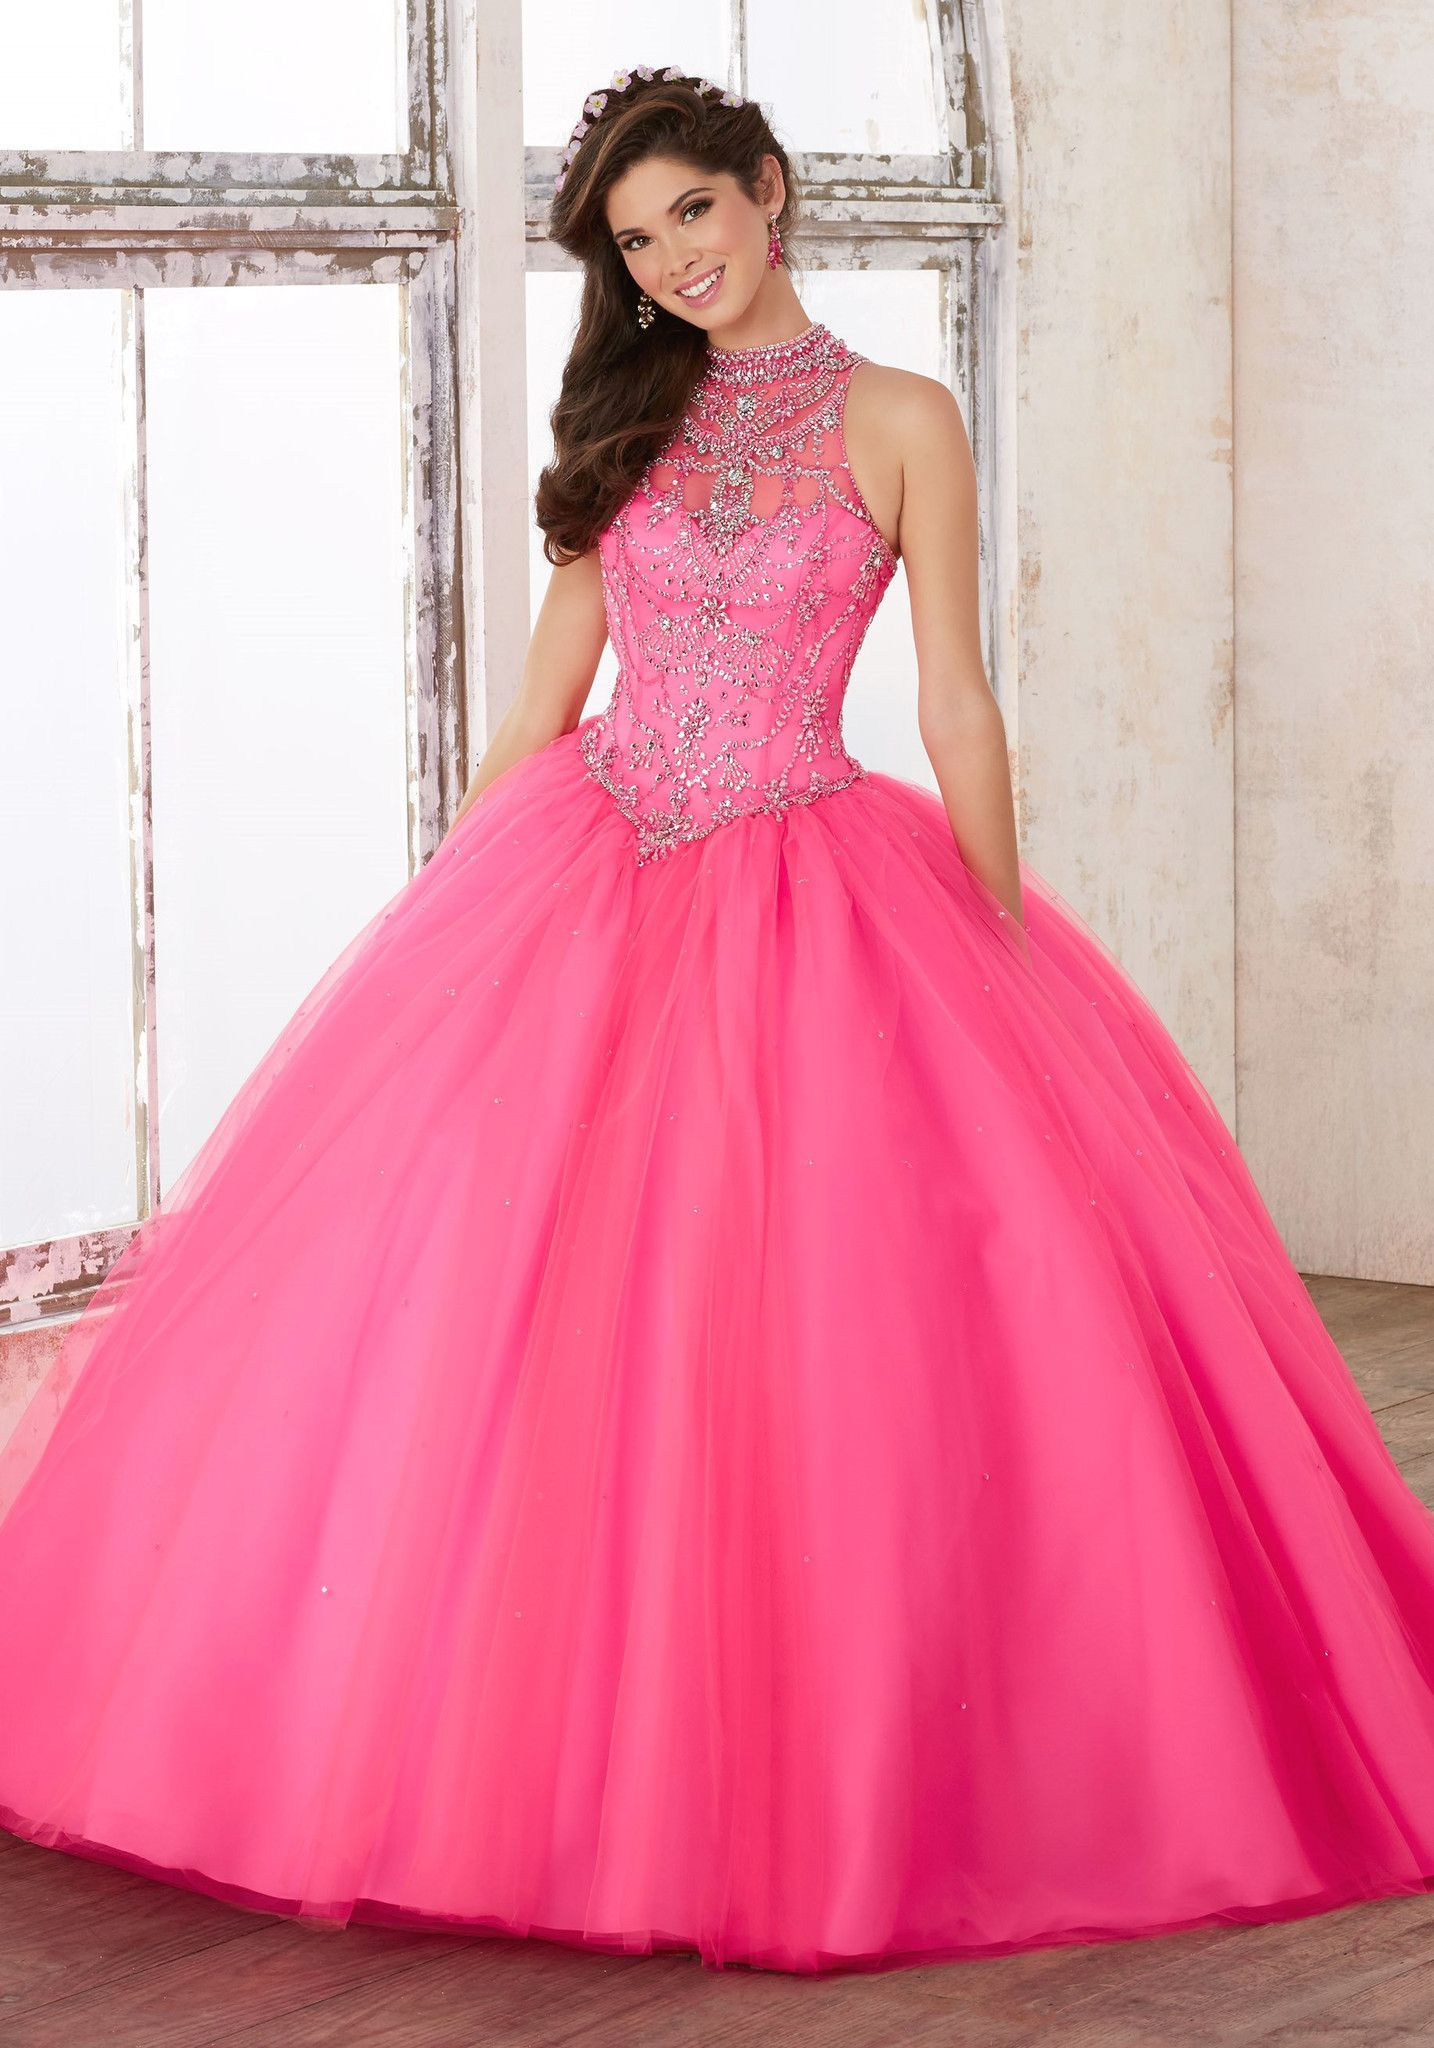 Mori Lee Valencia Quinceanera Dress 60011 | Pinterest | 15 años ...